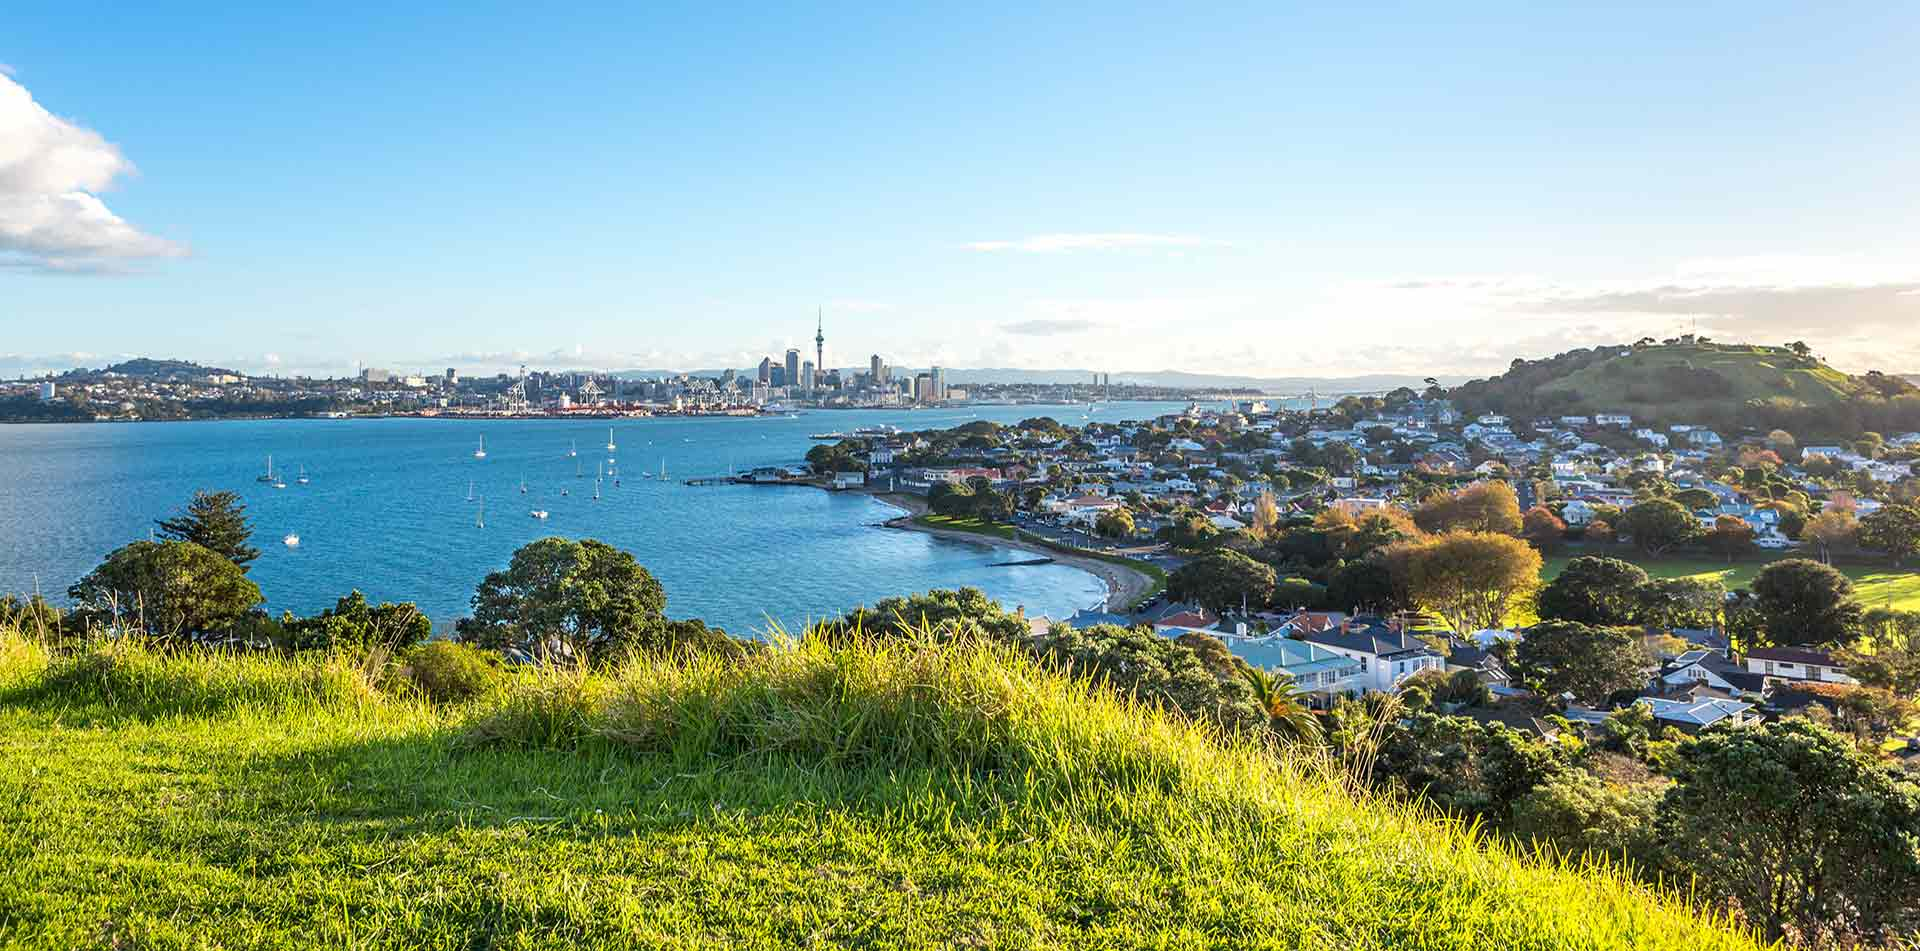 Oceania New Zealand view of the bay and city skyline of Auckland - luxury vacation destinations